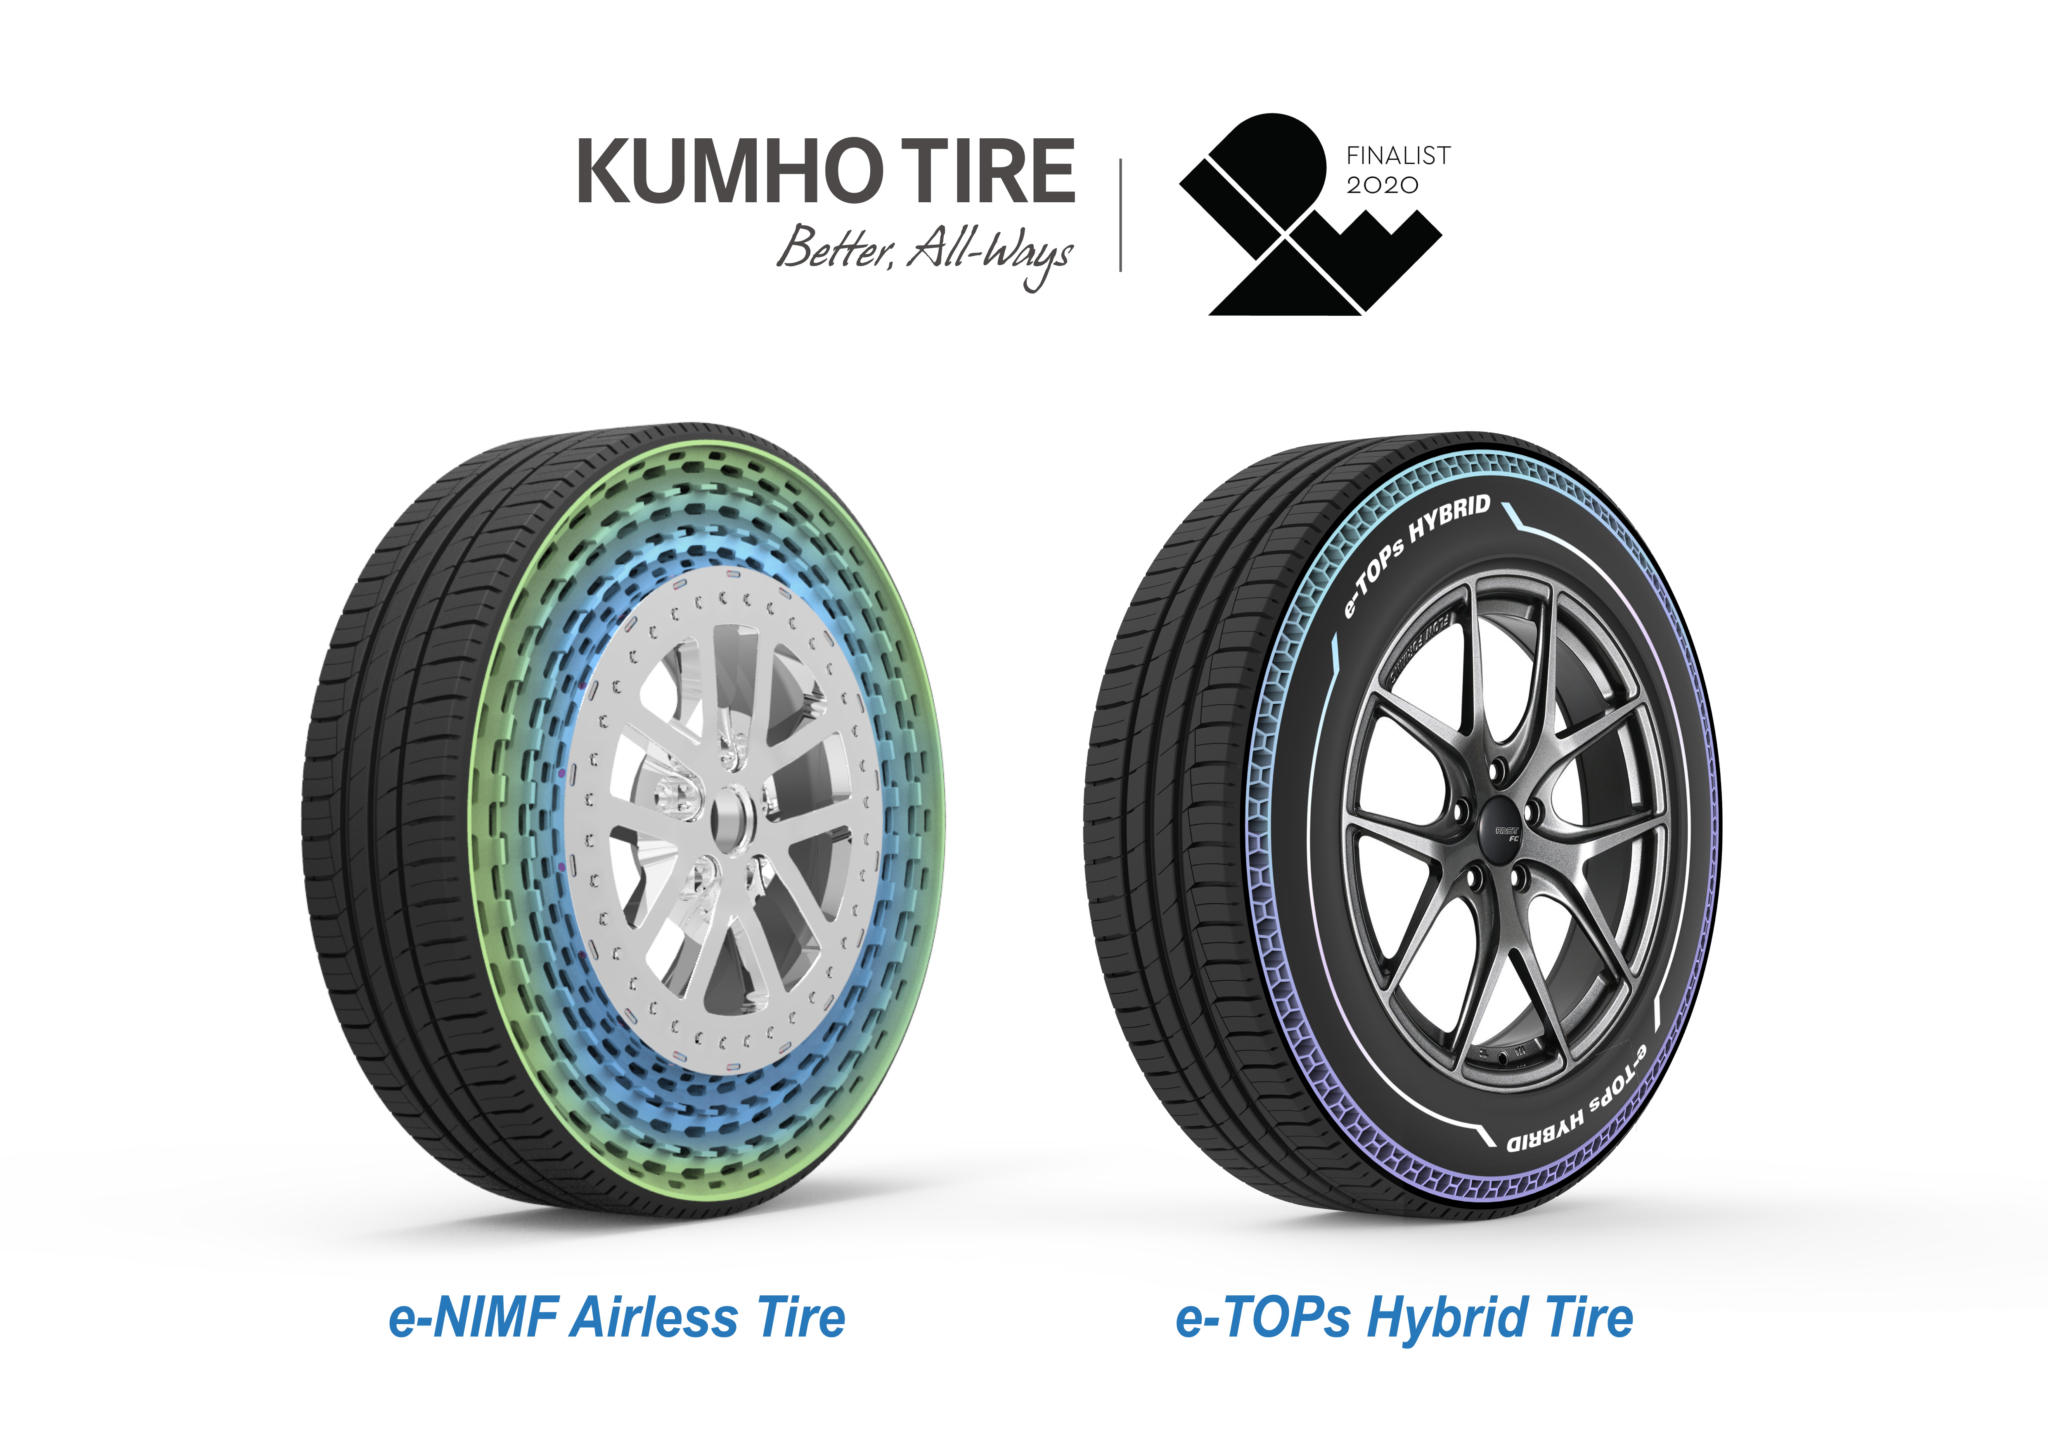 Kumho wins Idea design awards for airless and hybrid tyres